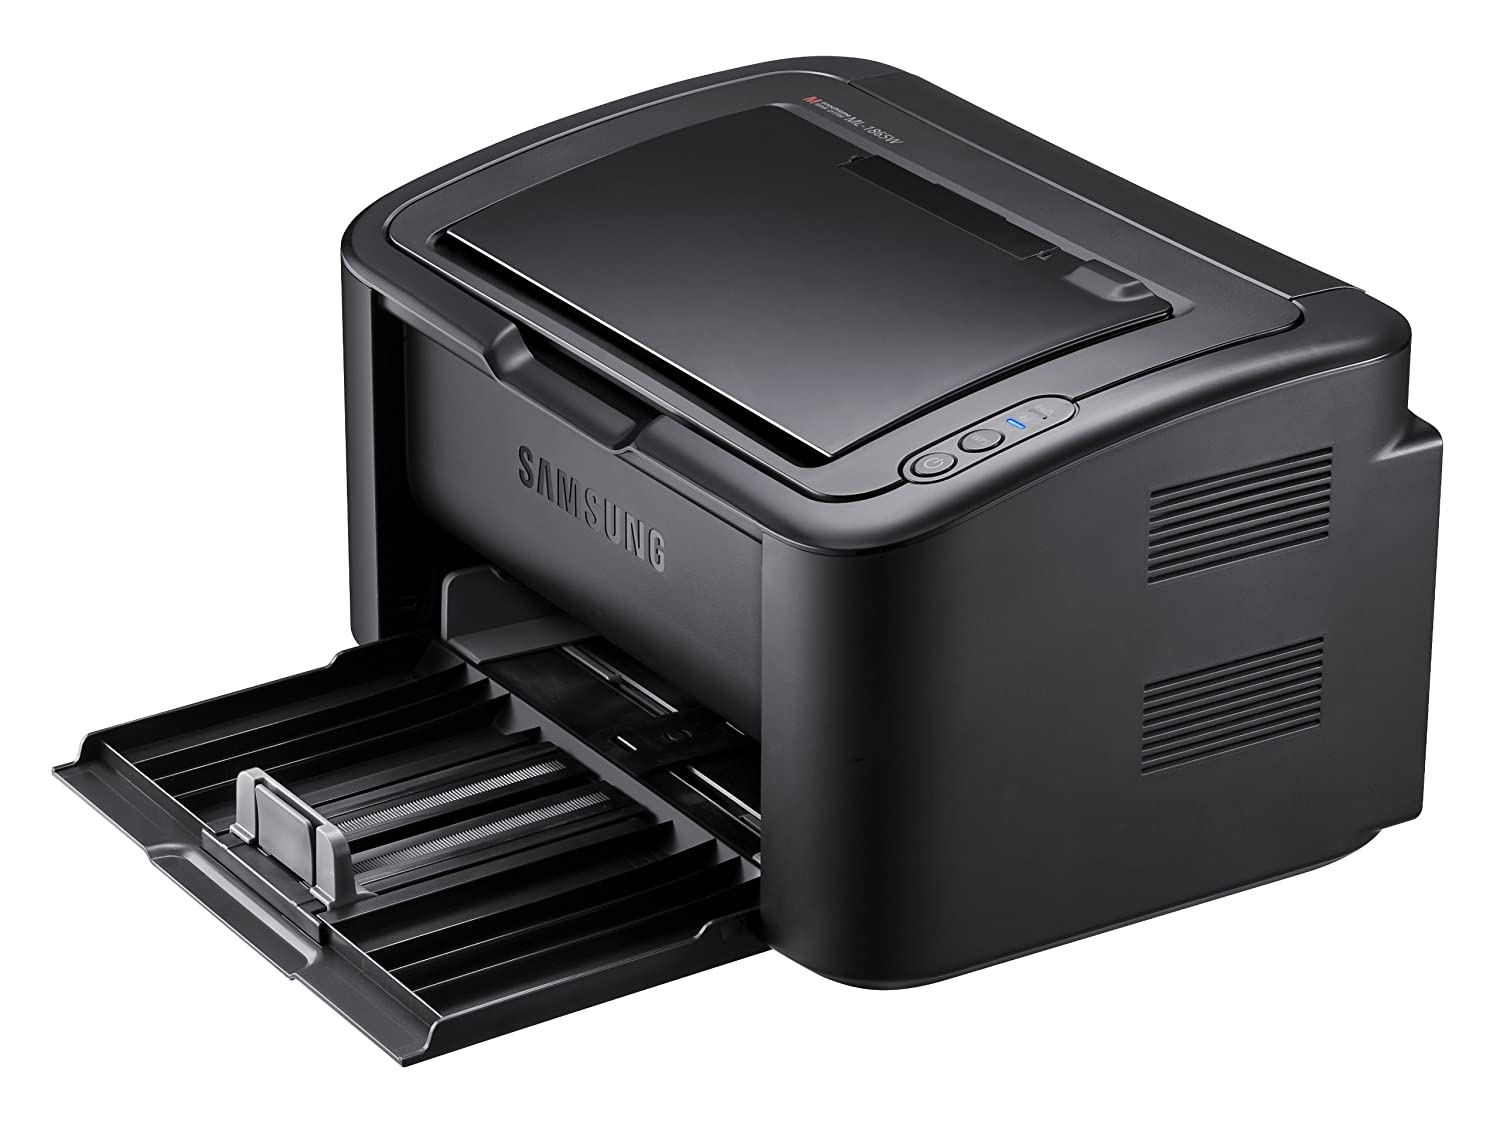 ML1865W PRINTER DOWNLOAD DRIVER